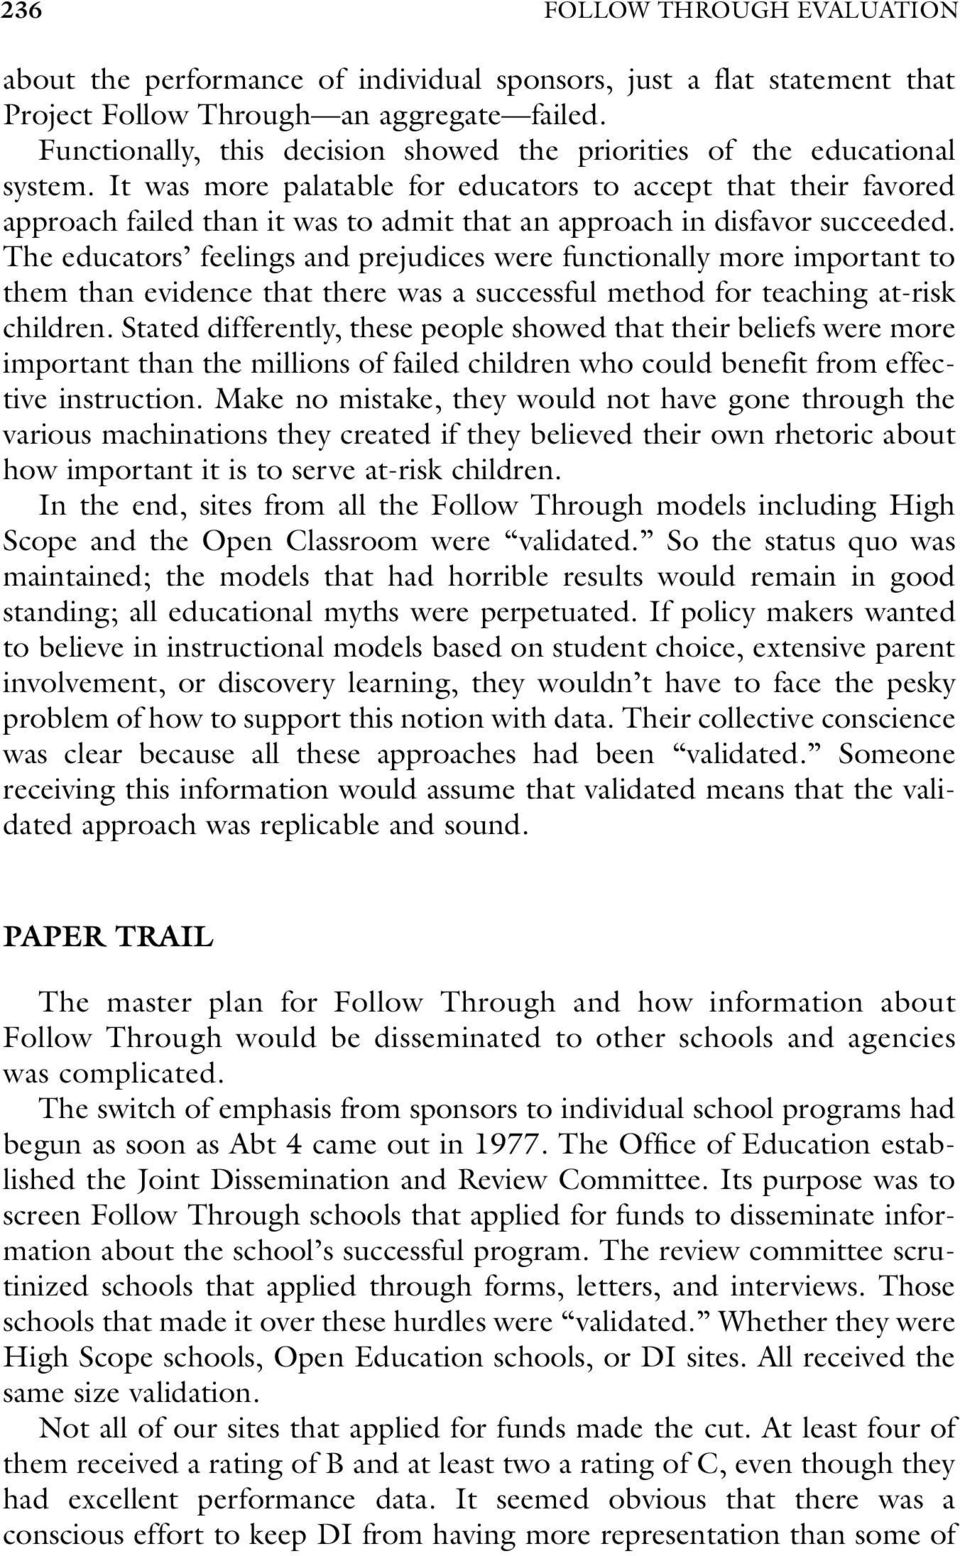 It was more palatable for educators to accept that their favored approach failed than it was to admit that an approach in disfavor succeeded.